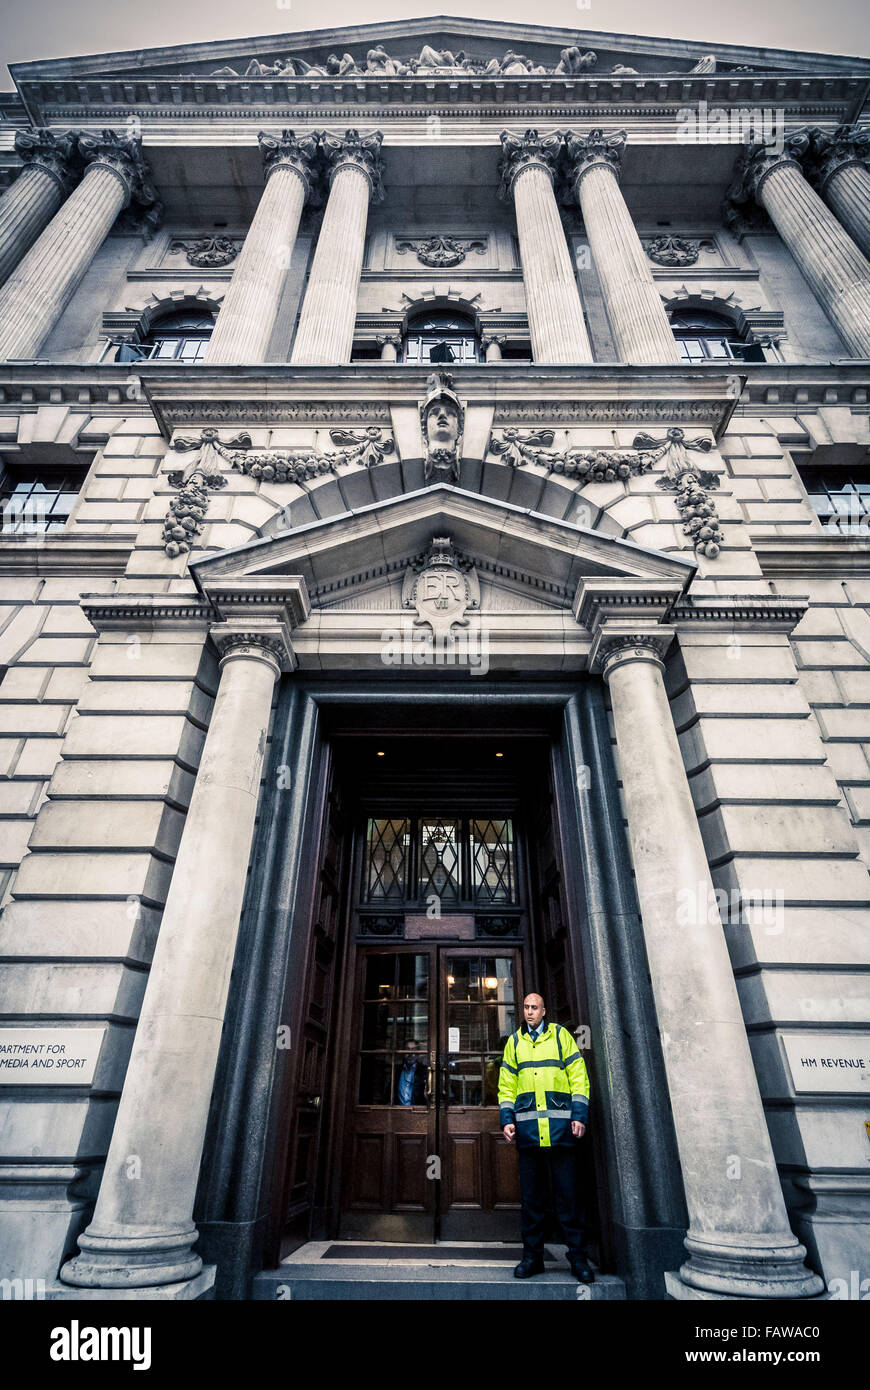 Department for culture media and sport hm revenue and customs department for culture media and sport hm revenue and customs building in whitehall london uk with security guard standing sciox Images